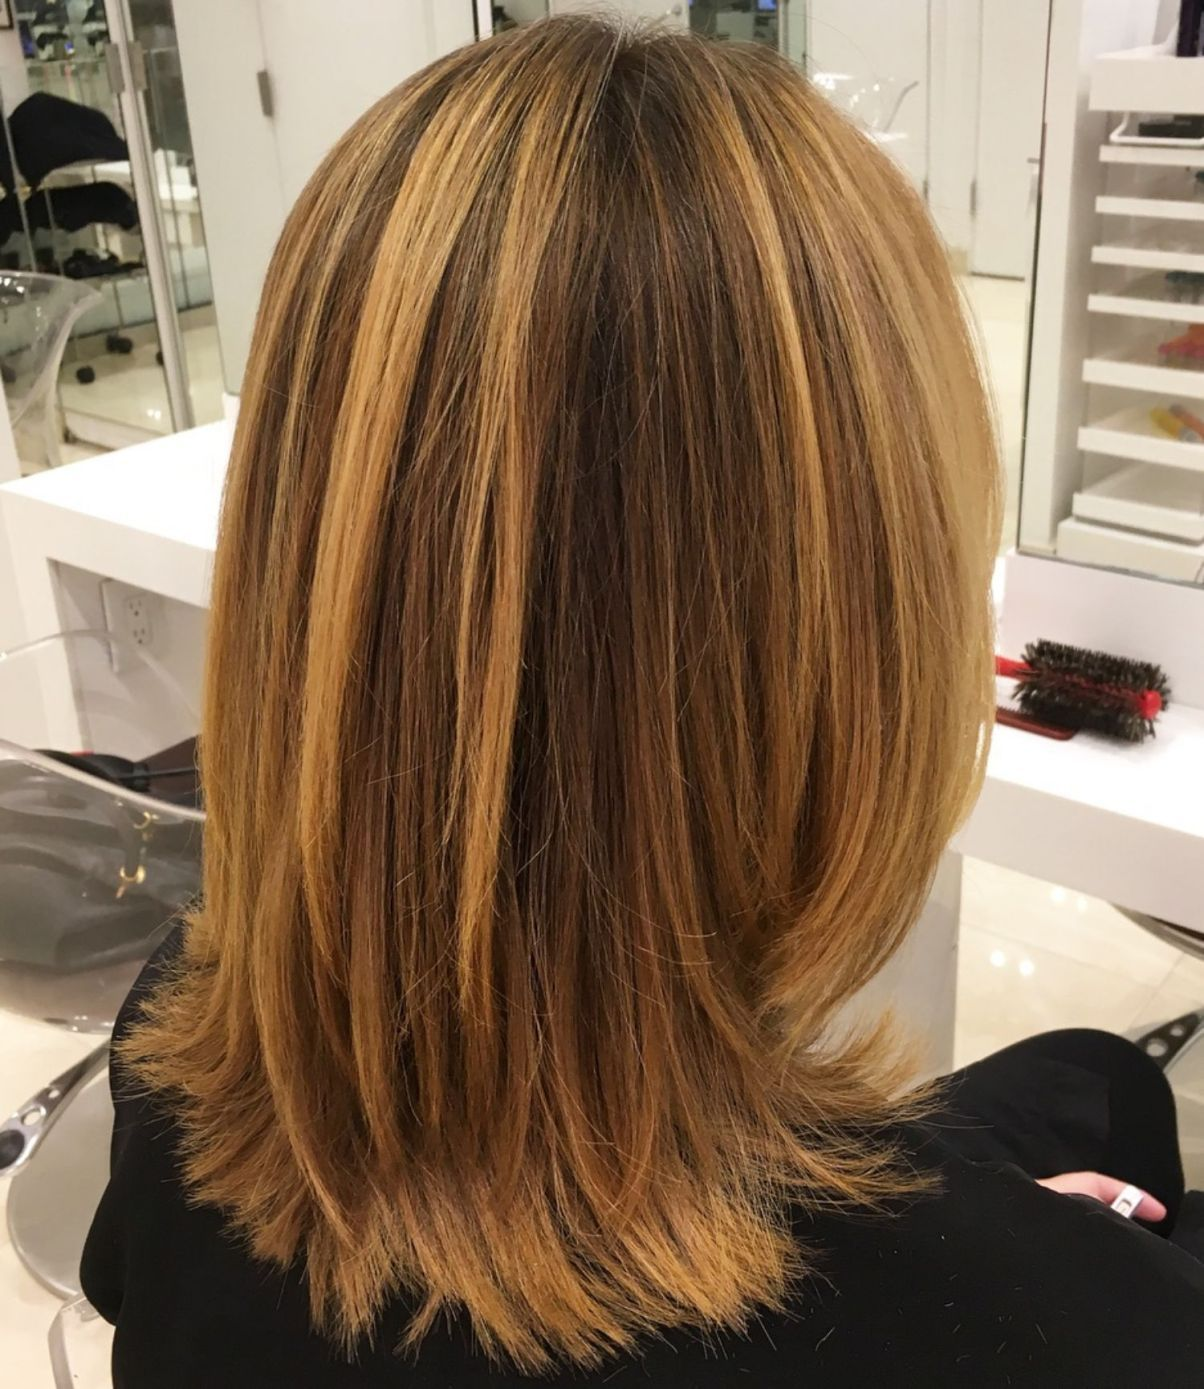 70 Brightest Medium Layered Haircuts To Light You Up Medium Layered Haircuts Medium Hair Styles Medium Layered Hair